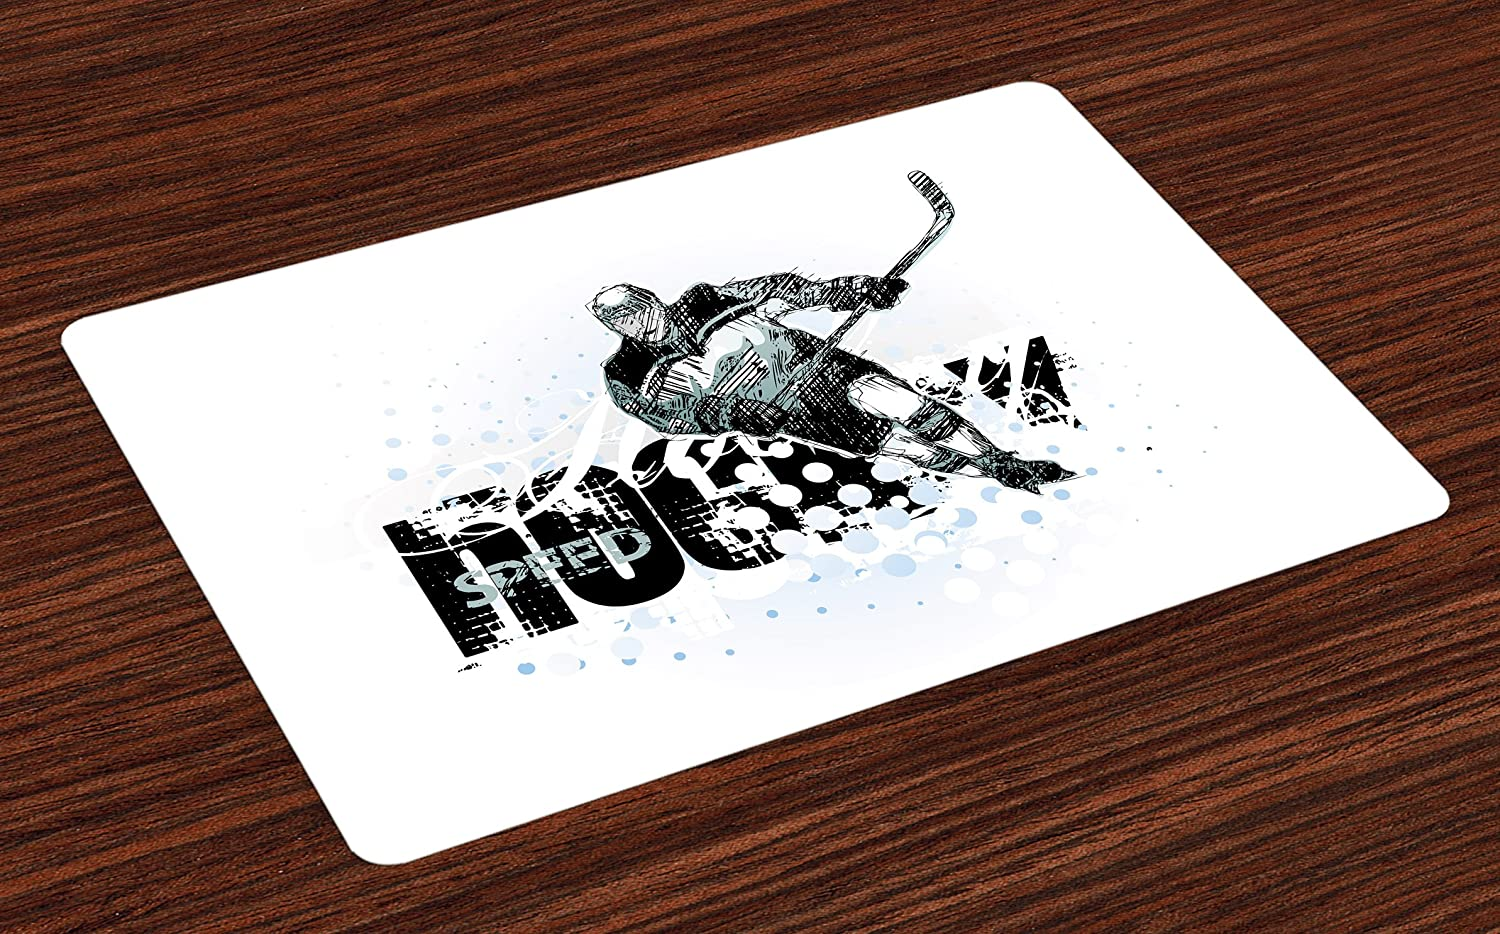 Ambesonne Hockey Place Mats Set of 4, Grunge Sketch Art of a Professional Player Silhouette and Text with Dots, Washable Fabric Placemats for Dining Room Kitchen Table Decor, Black White Pale Blue